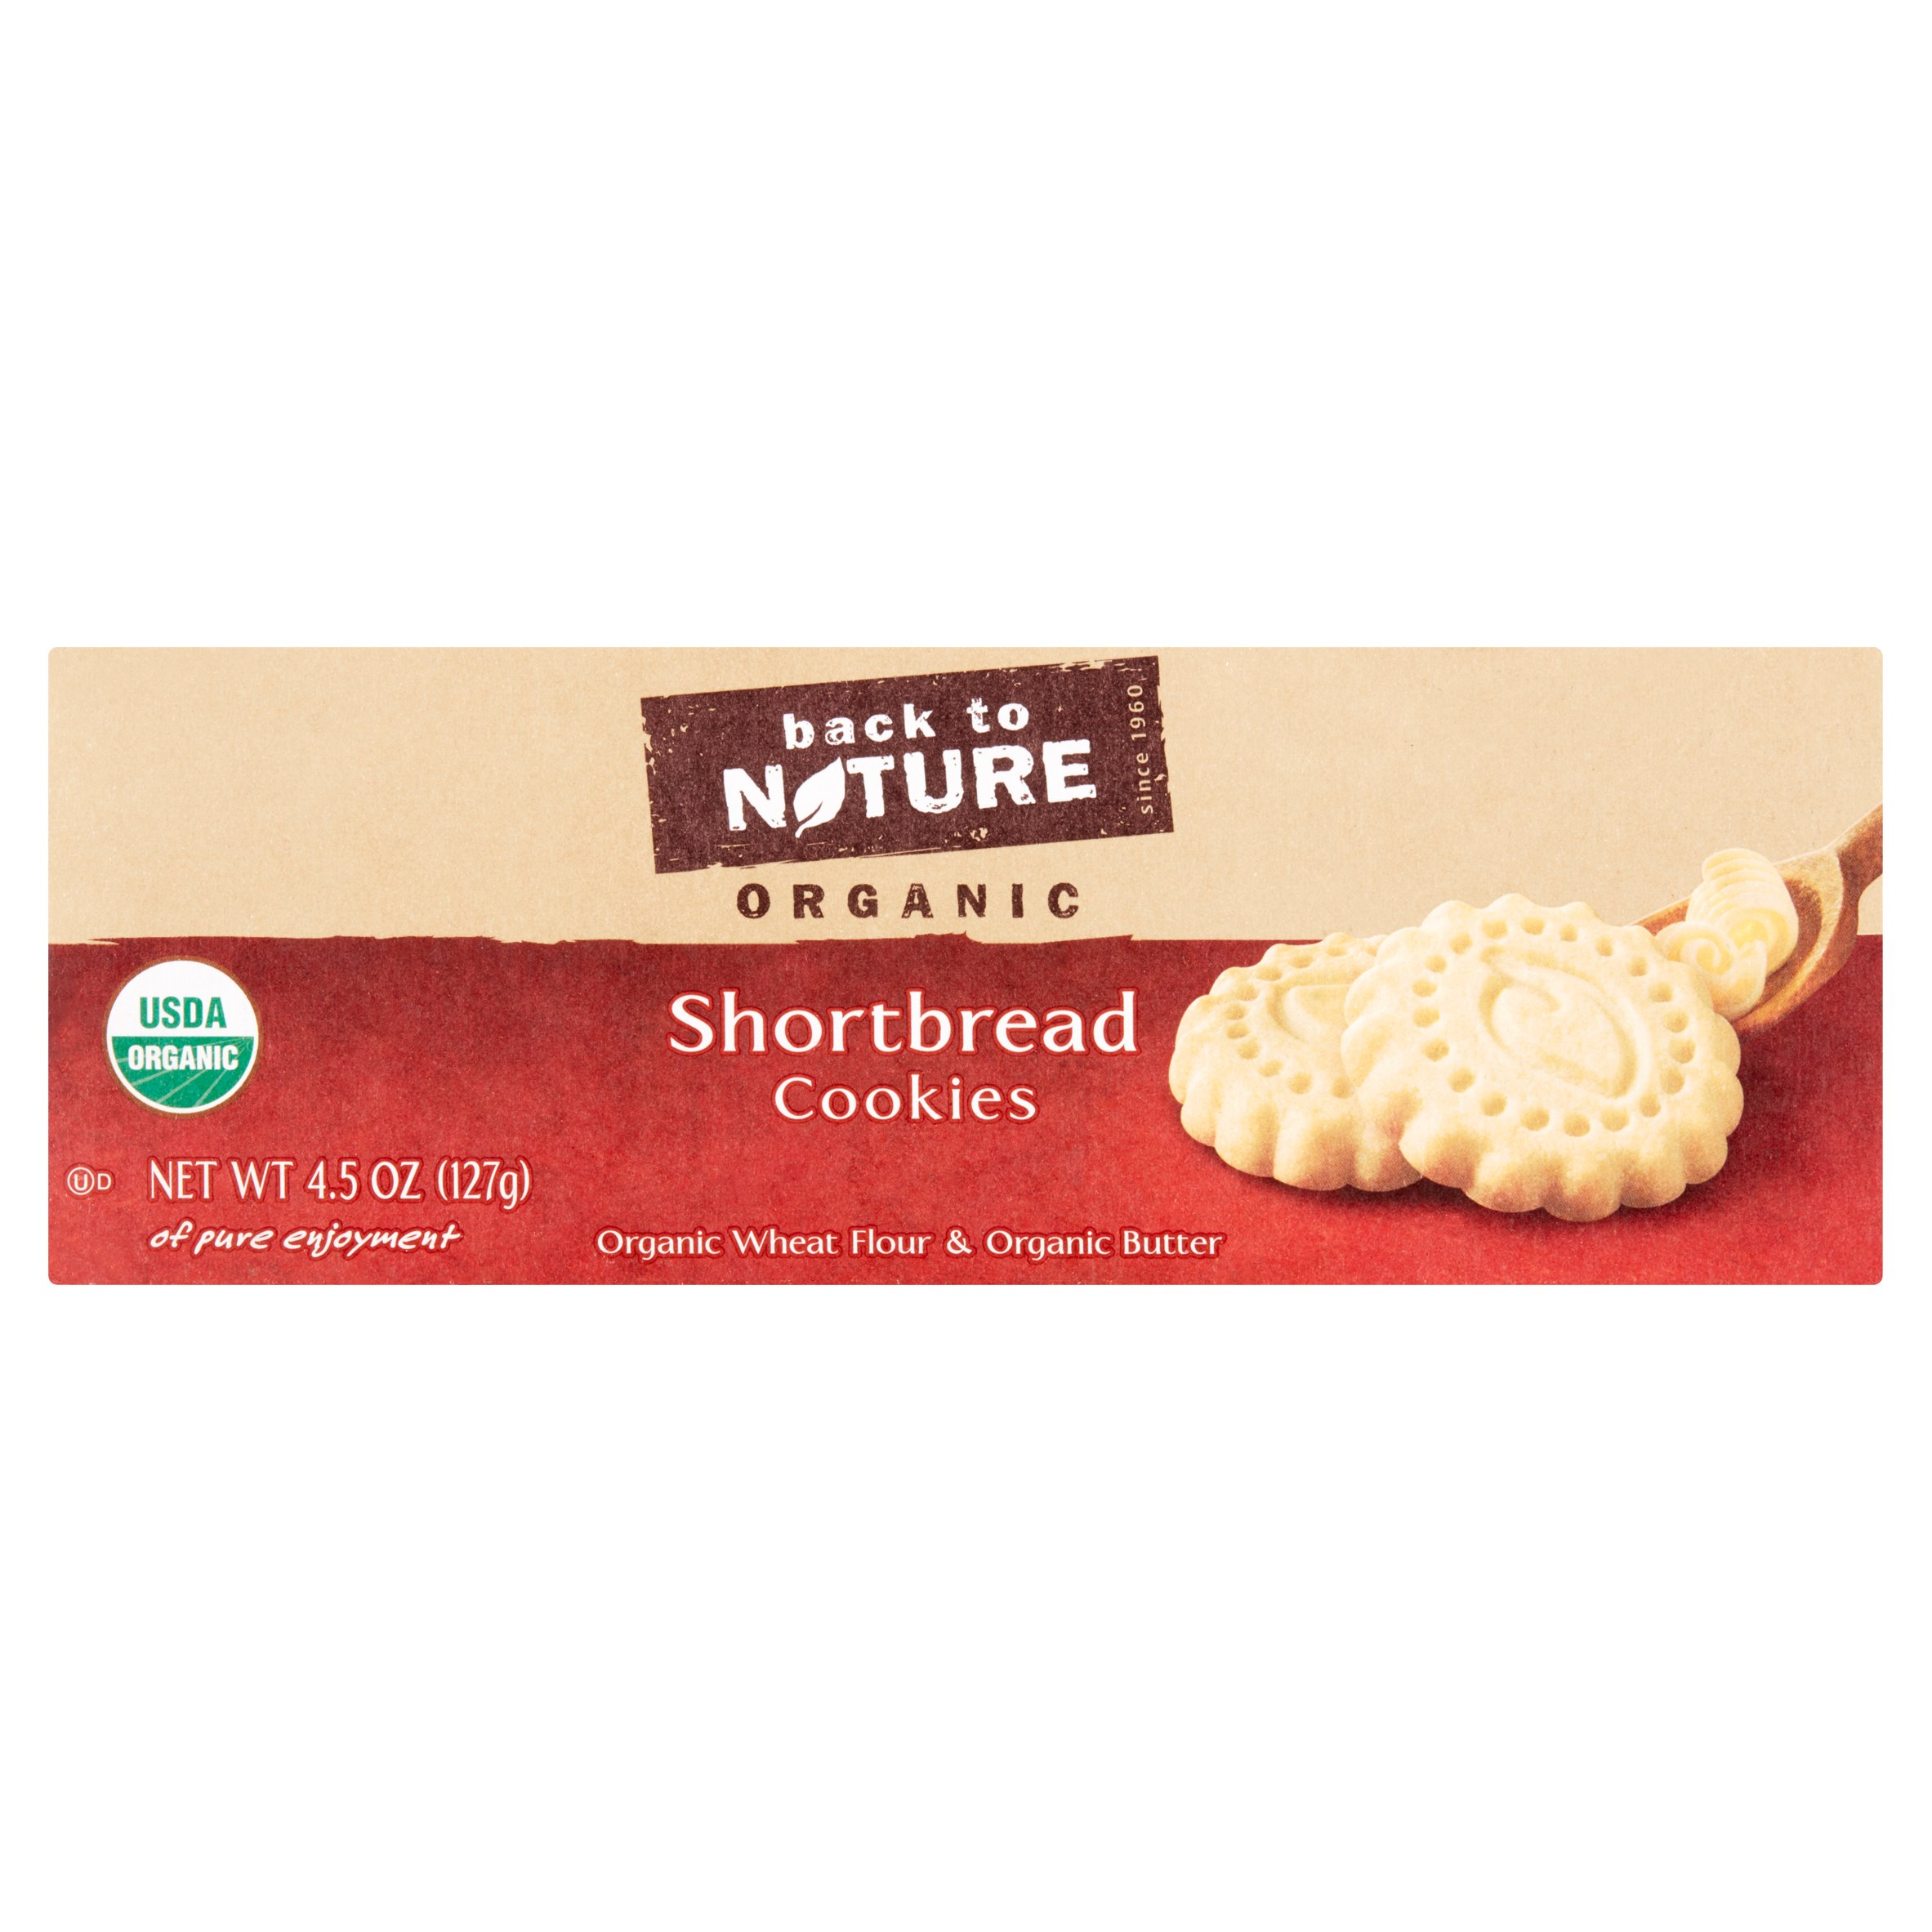 Back to Nature Organic Shortbread Cookies, 4.5 oz by Back to Nature Foods Co., LLC